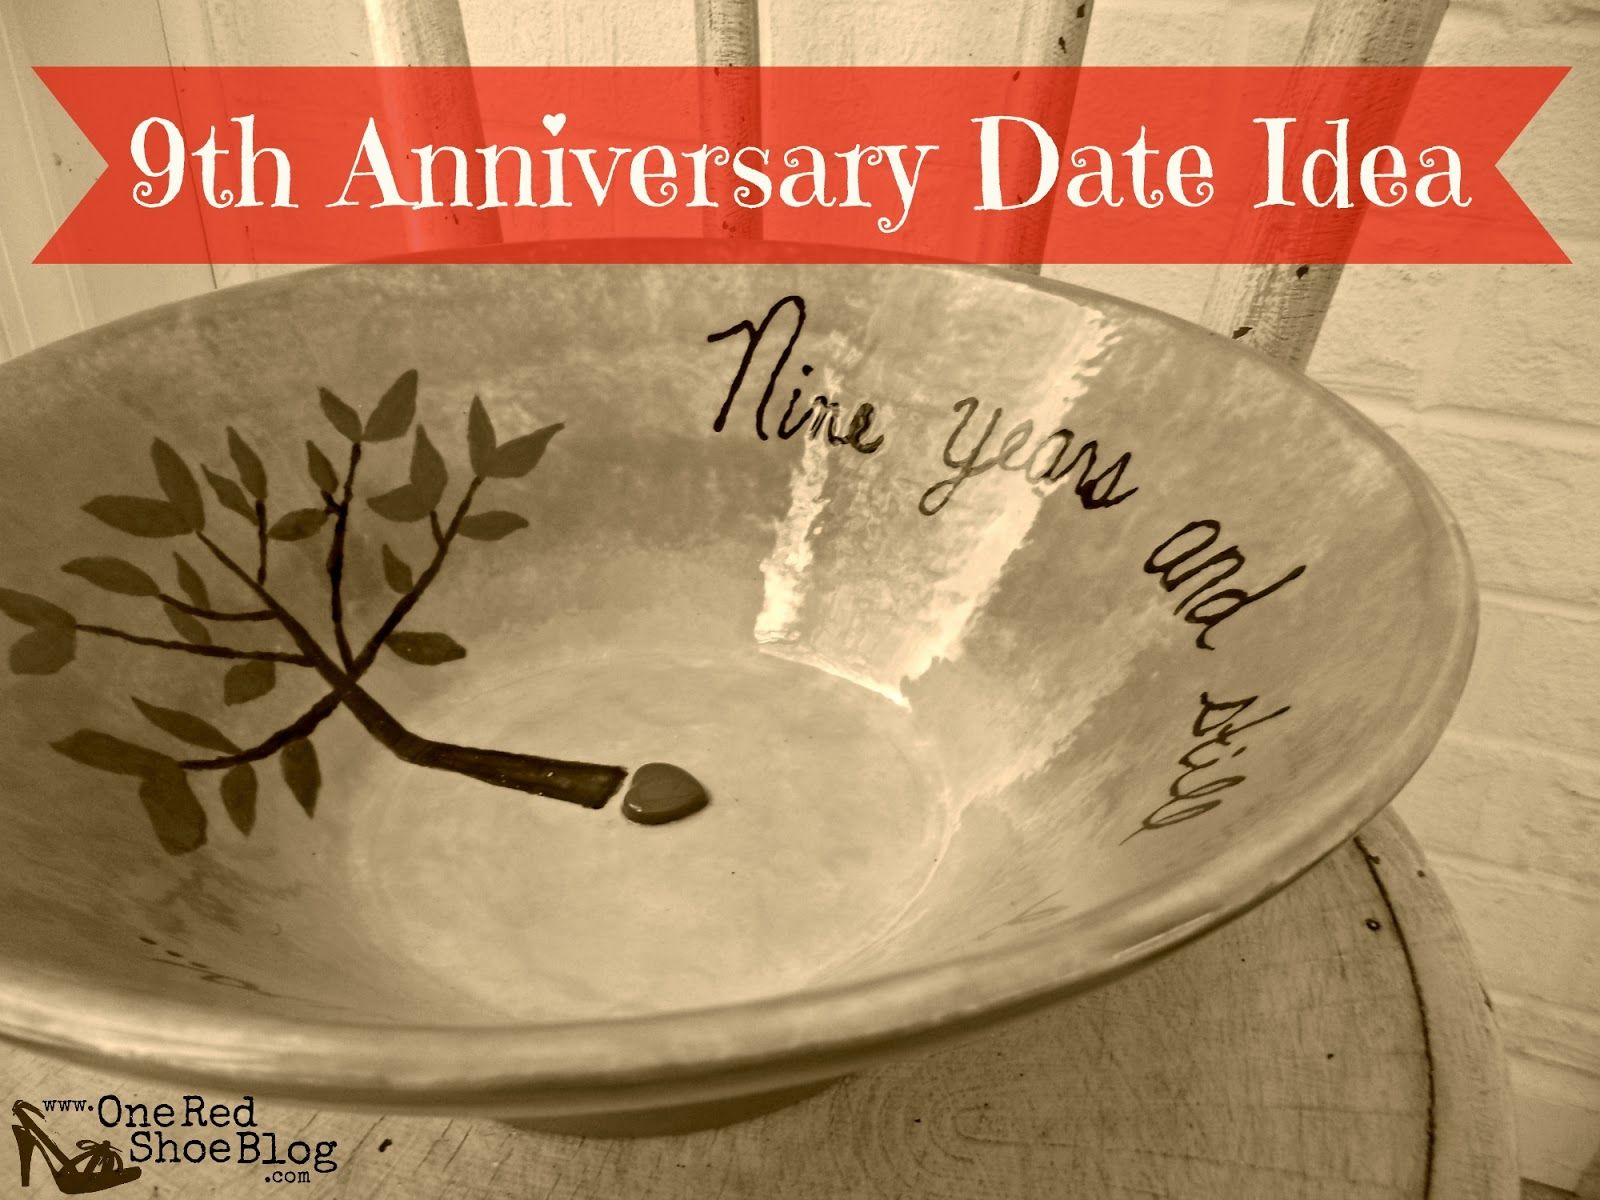 9th Anniversary Pottery Idea For Date Night